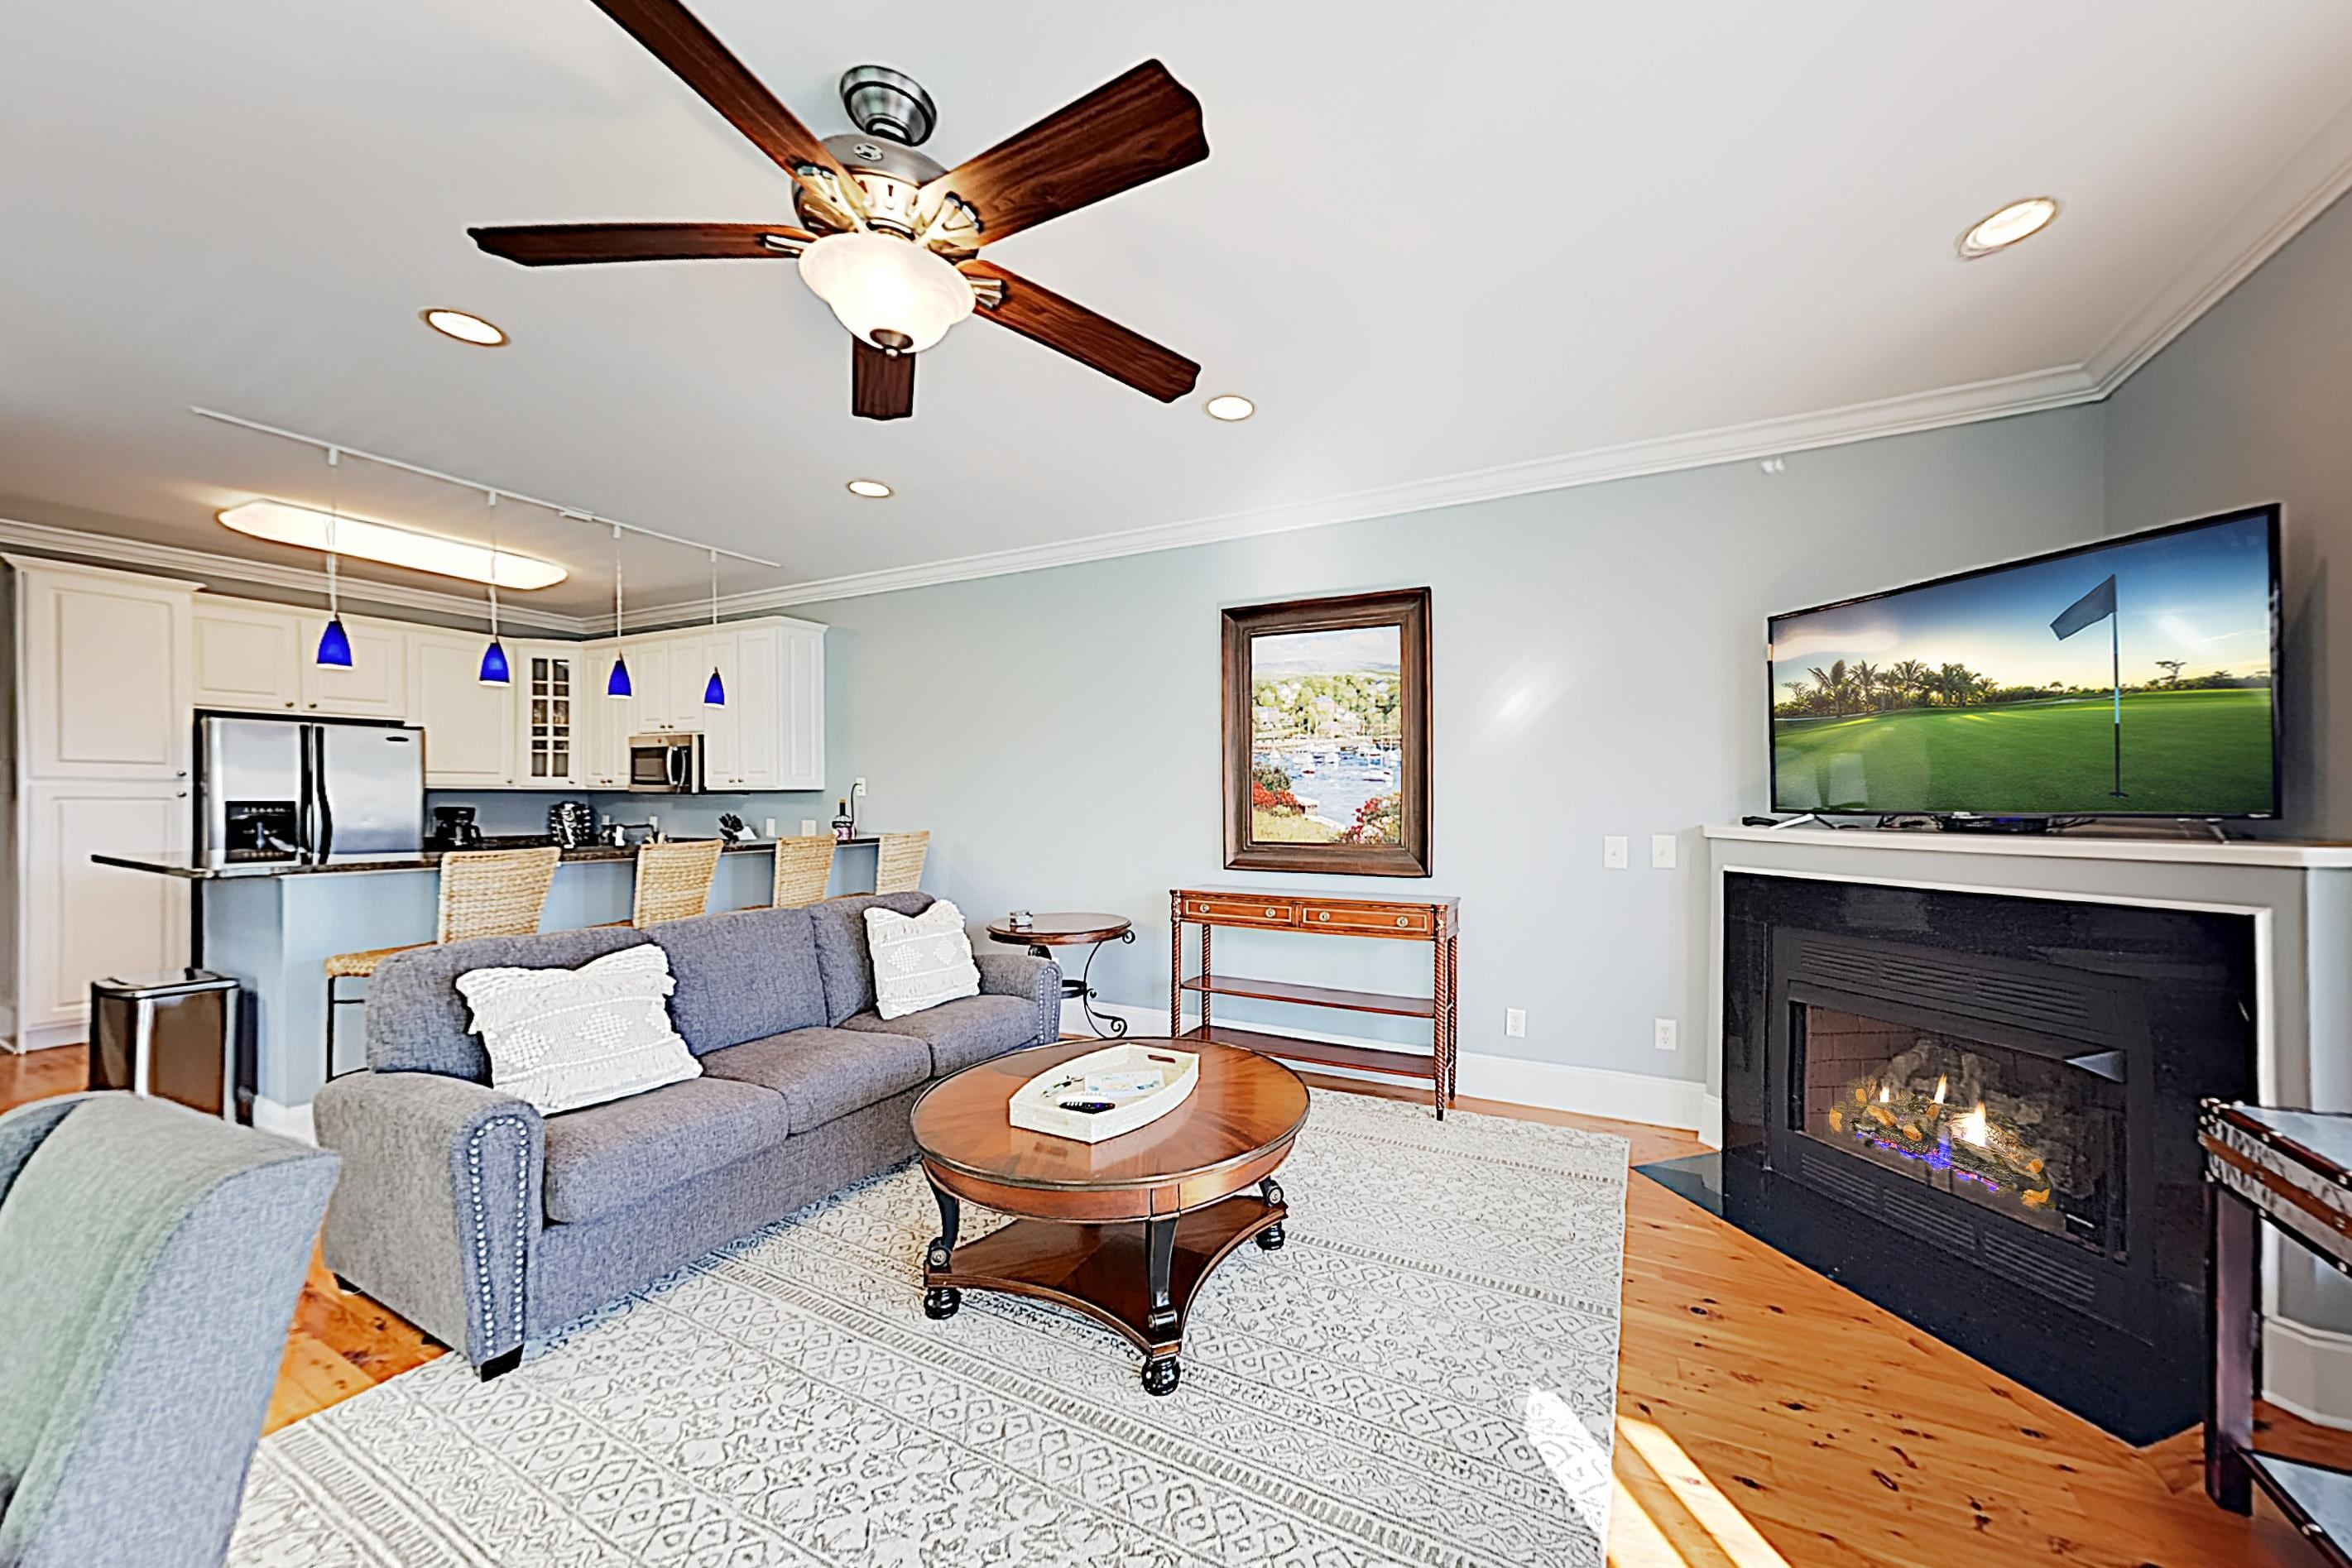 Welcome to Carolina Beach! This property is professionally managed by TurnKey Vacation Rentals.